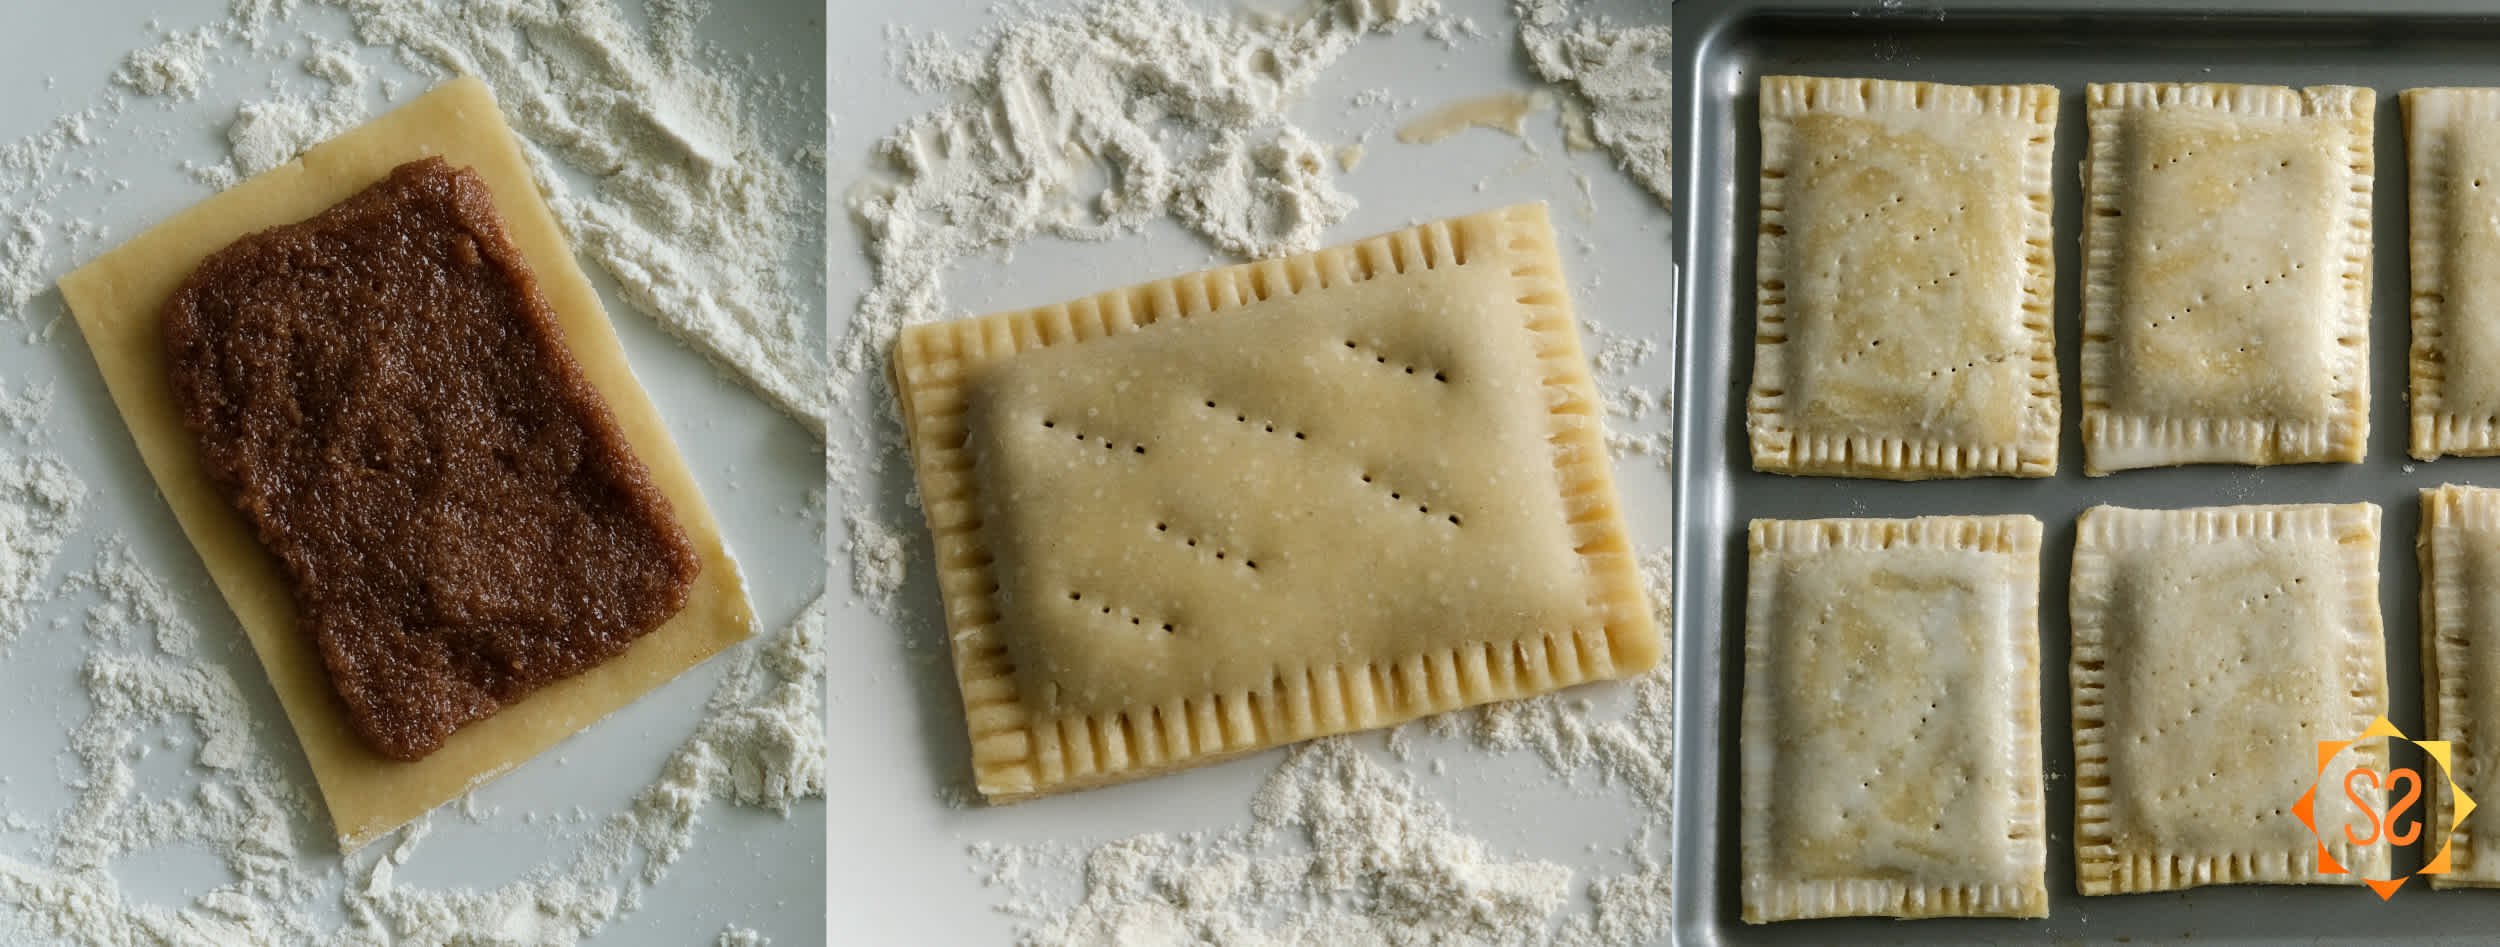 Left: filling on a dough rectangle; middle: Pop-tart with filling, sealed, crimped, and with holes; right: Pop-tarts brushed with almond milk, on a baking tray, ready to go in the oven